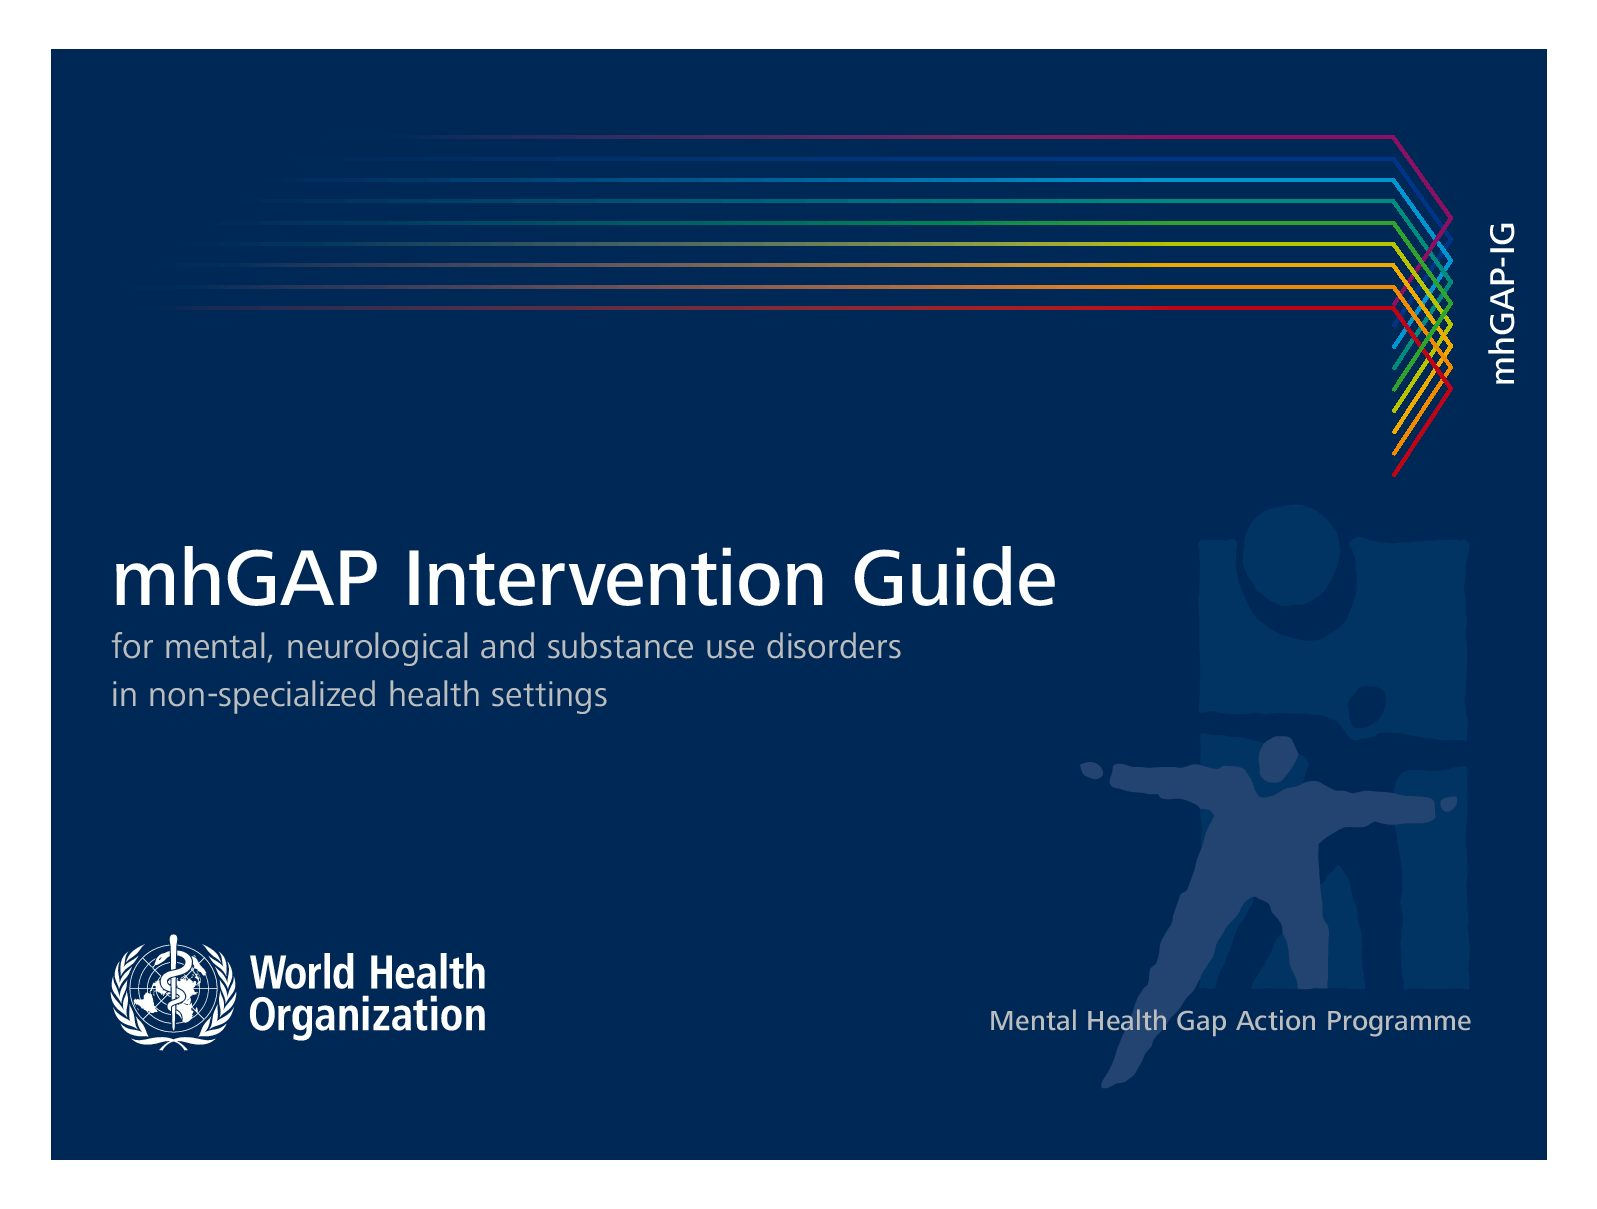 WHO. MhGAP intervention guide for mental, neurological and substance use disorders in non-specialized health settings.